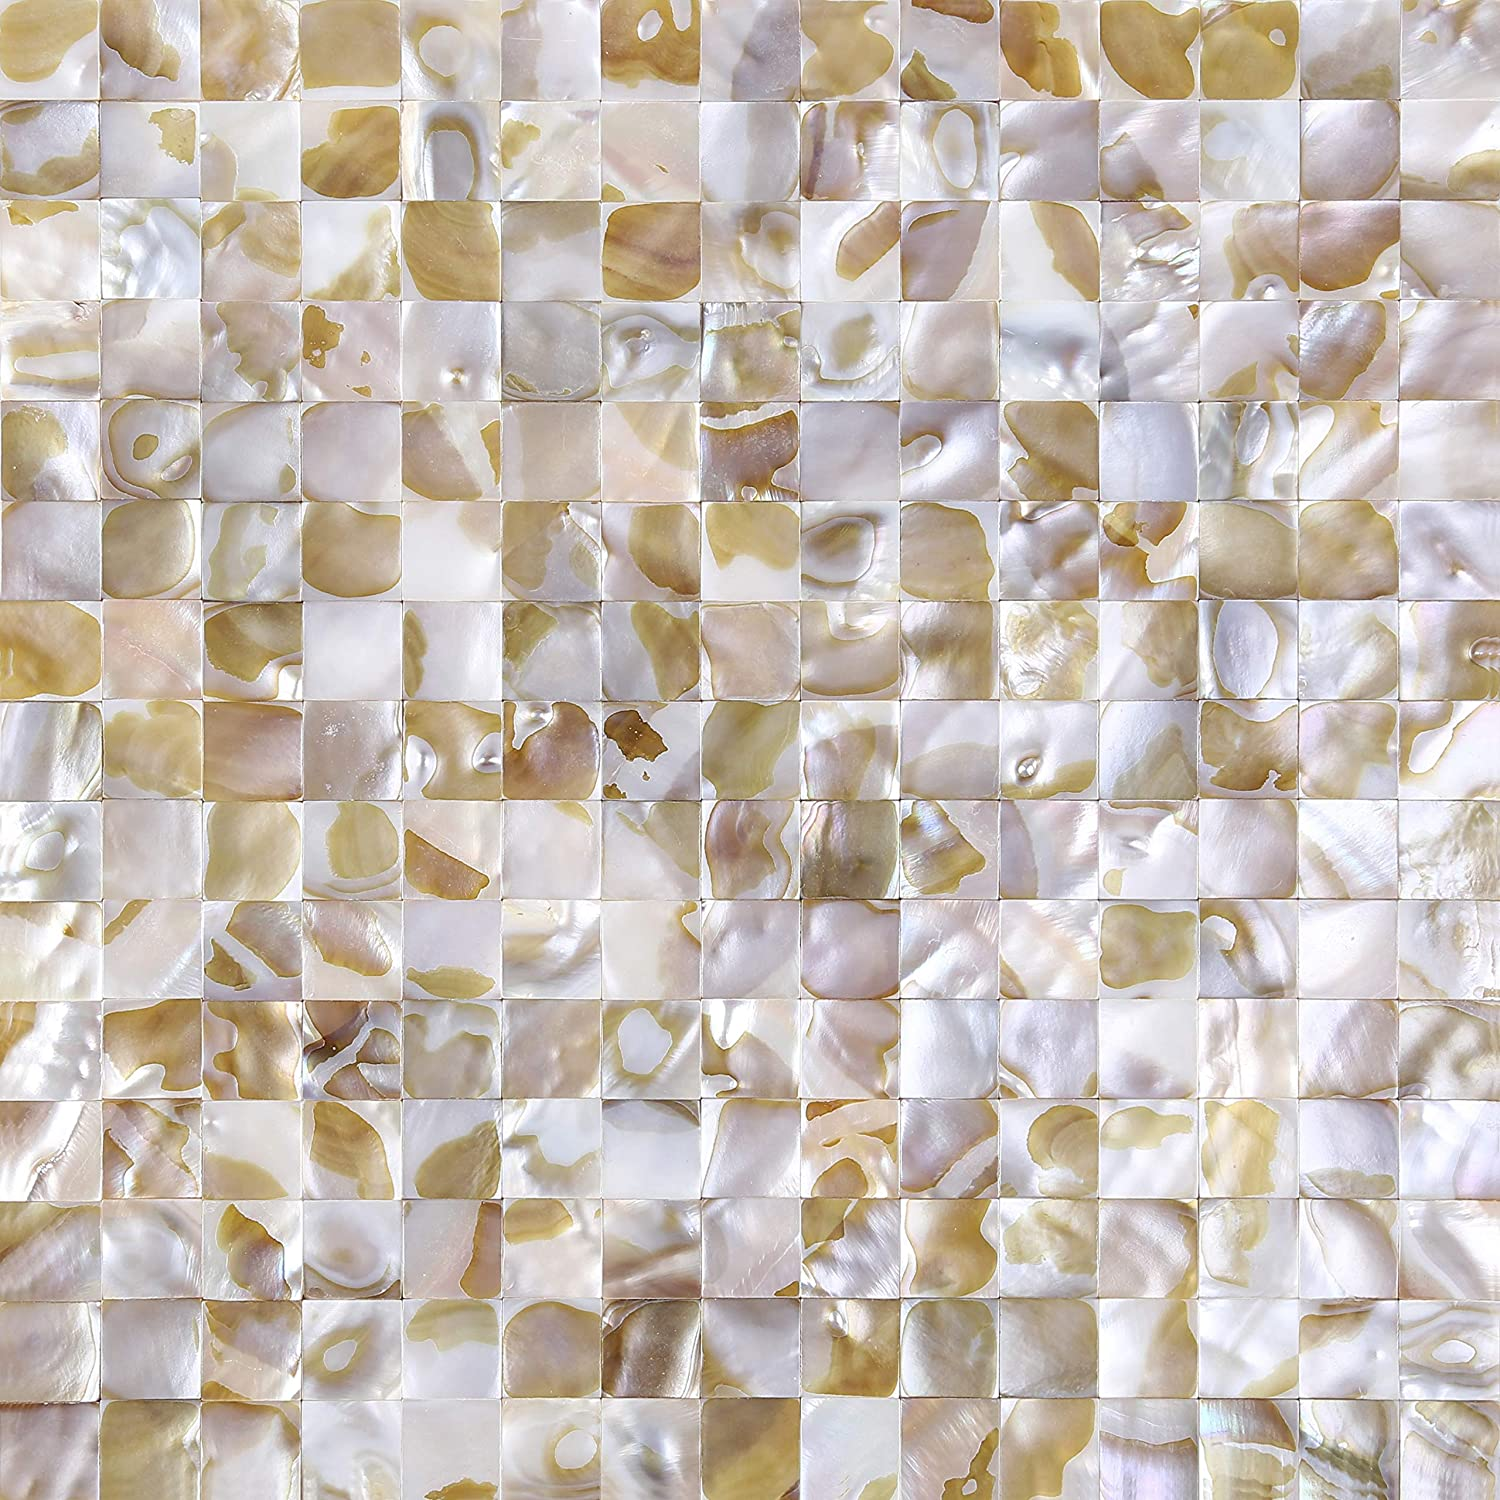 Jhana Tile - 6 Sheets DIY Peel and Stick 3D Wall Decor Genuine Mother of Pearl Shell Mosaic Tile for Kitchen Backsplash, Bathroom Accent Wall, 12